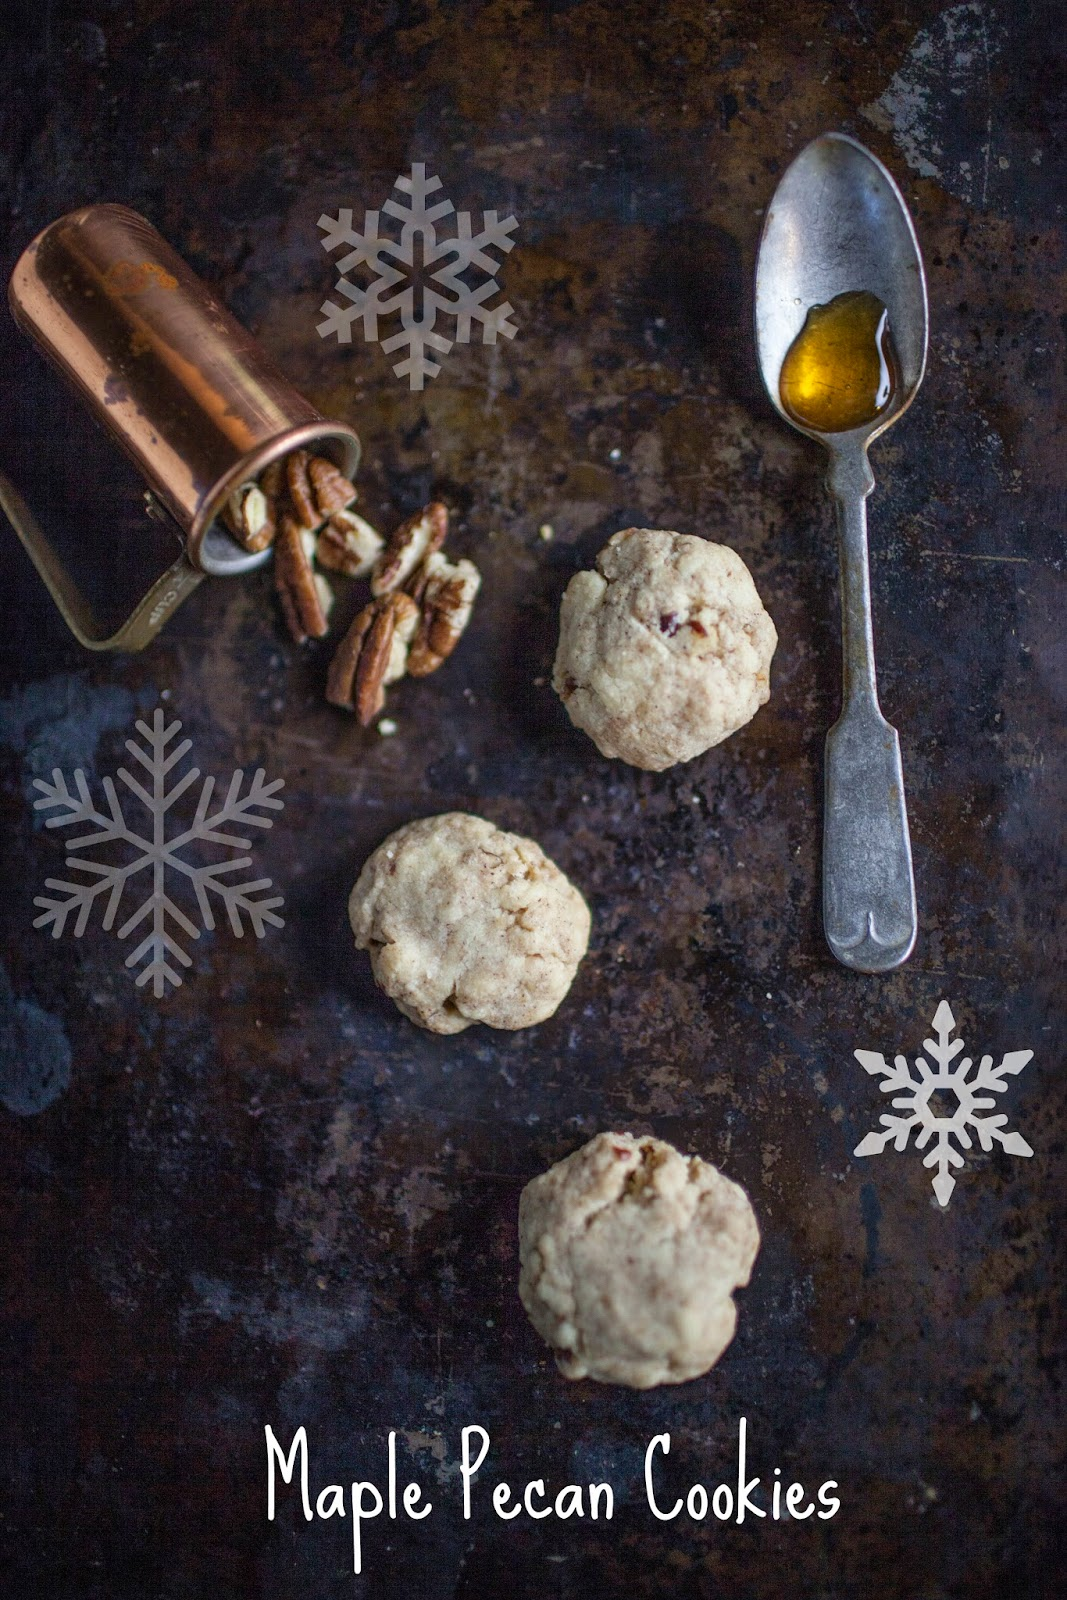 One cookie recipe 12 ways: Maple Pecan Cookies